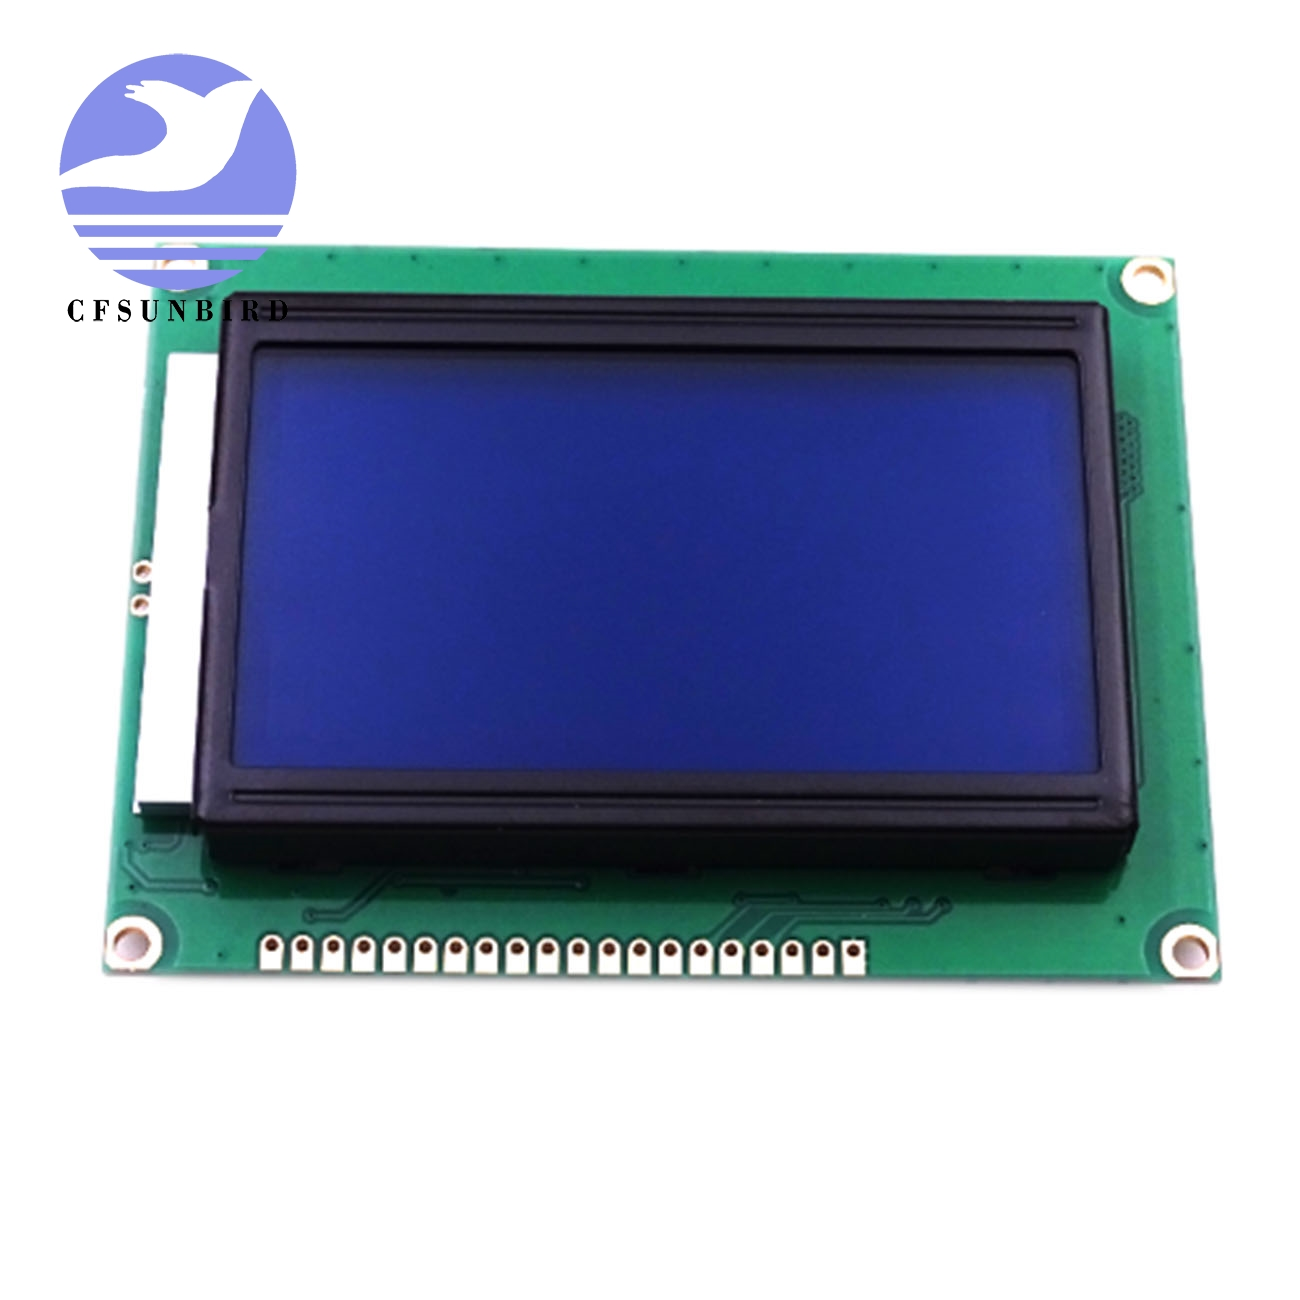 5pcs//lot 12864 dots LCD Module 5v Blue Screen 12864 LCD with Backlight st7920 Parallel Port